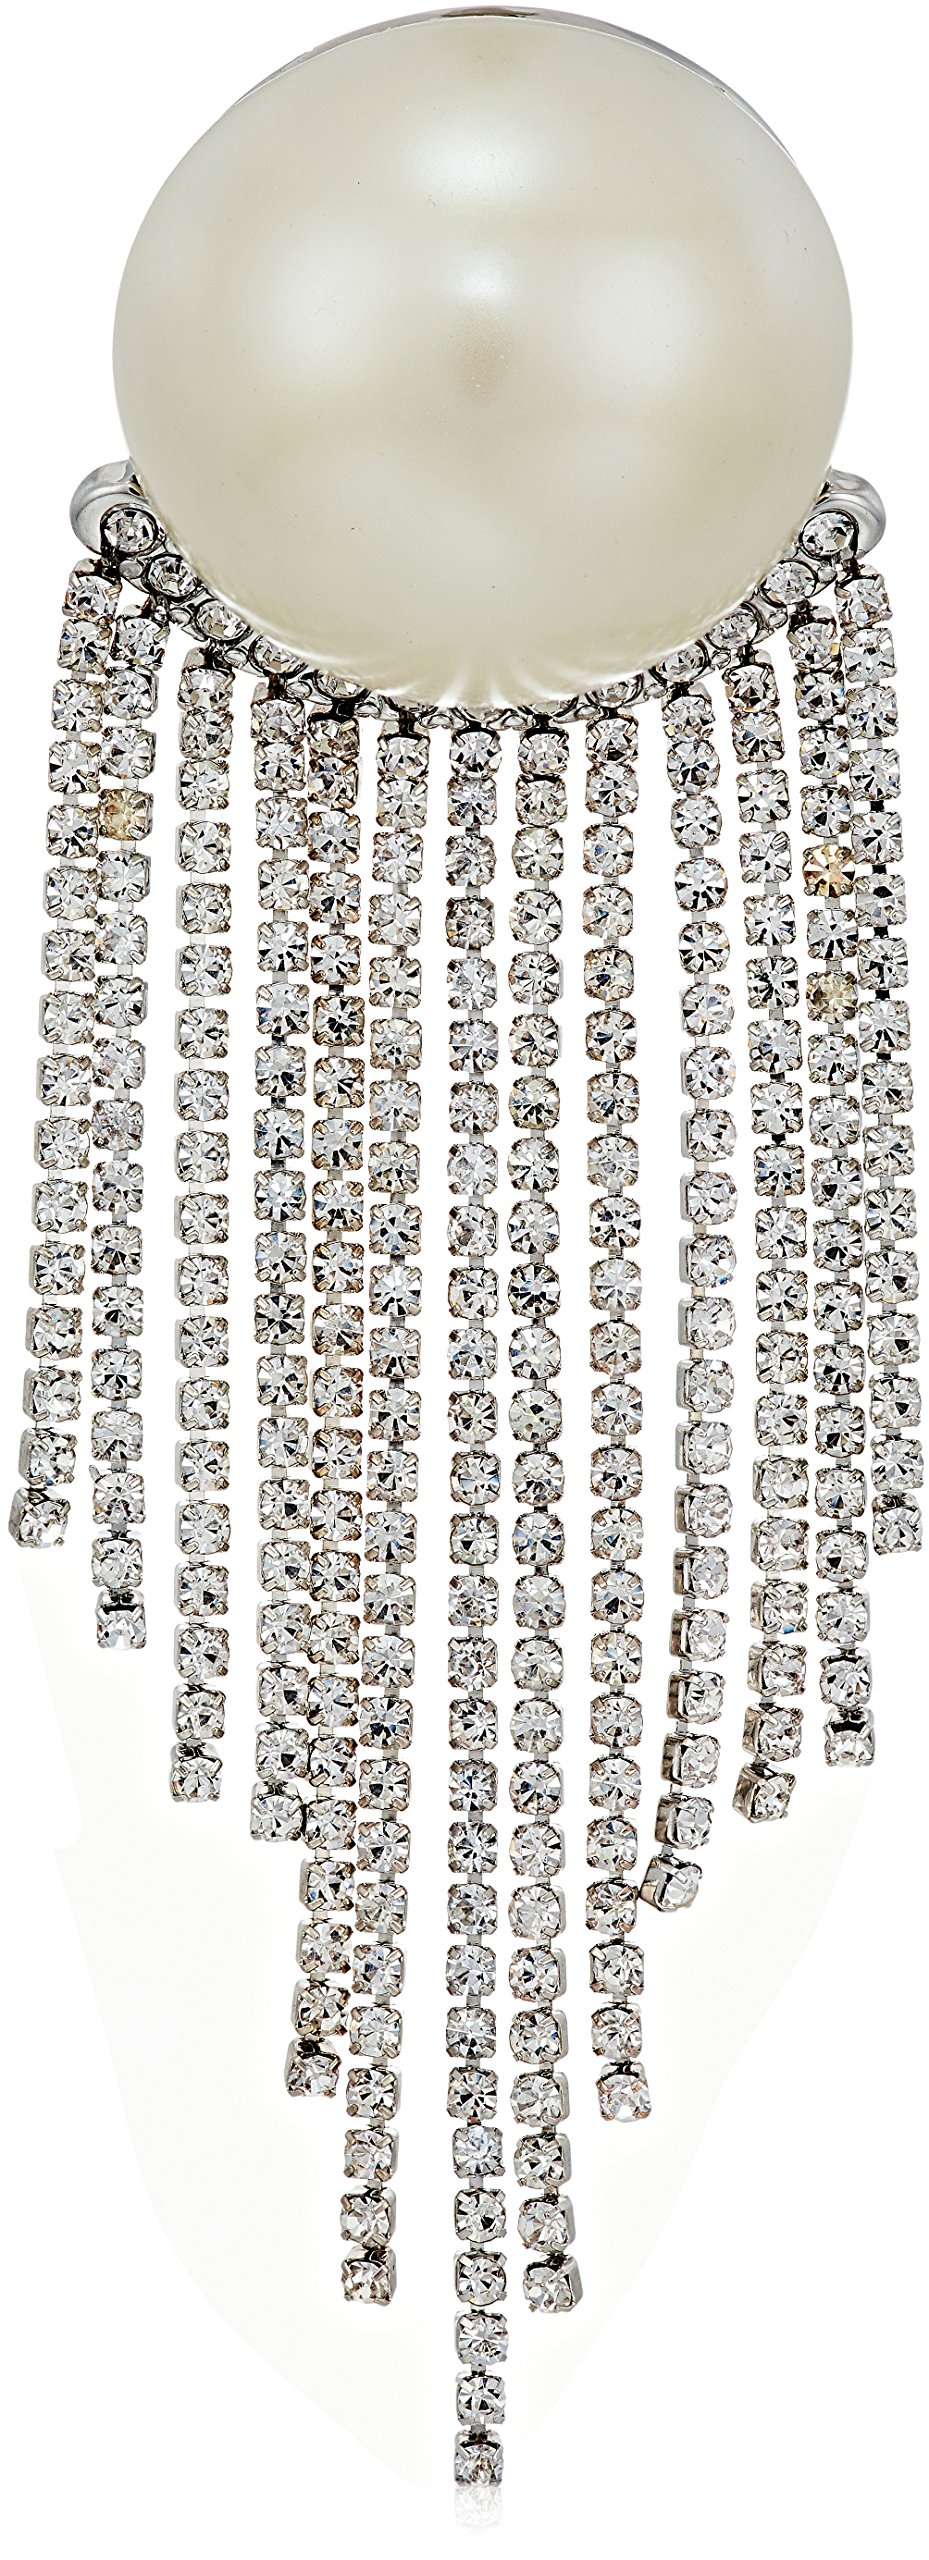 Carolee Grand Entrance Pearl with Rhinestone Fringe Brooch and Pin